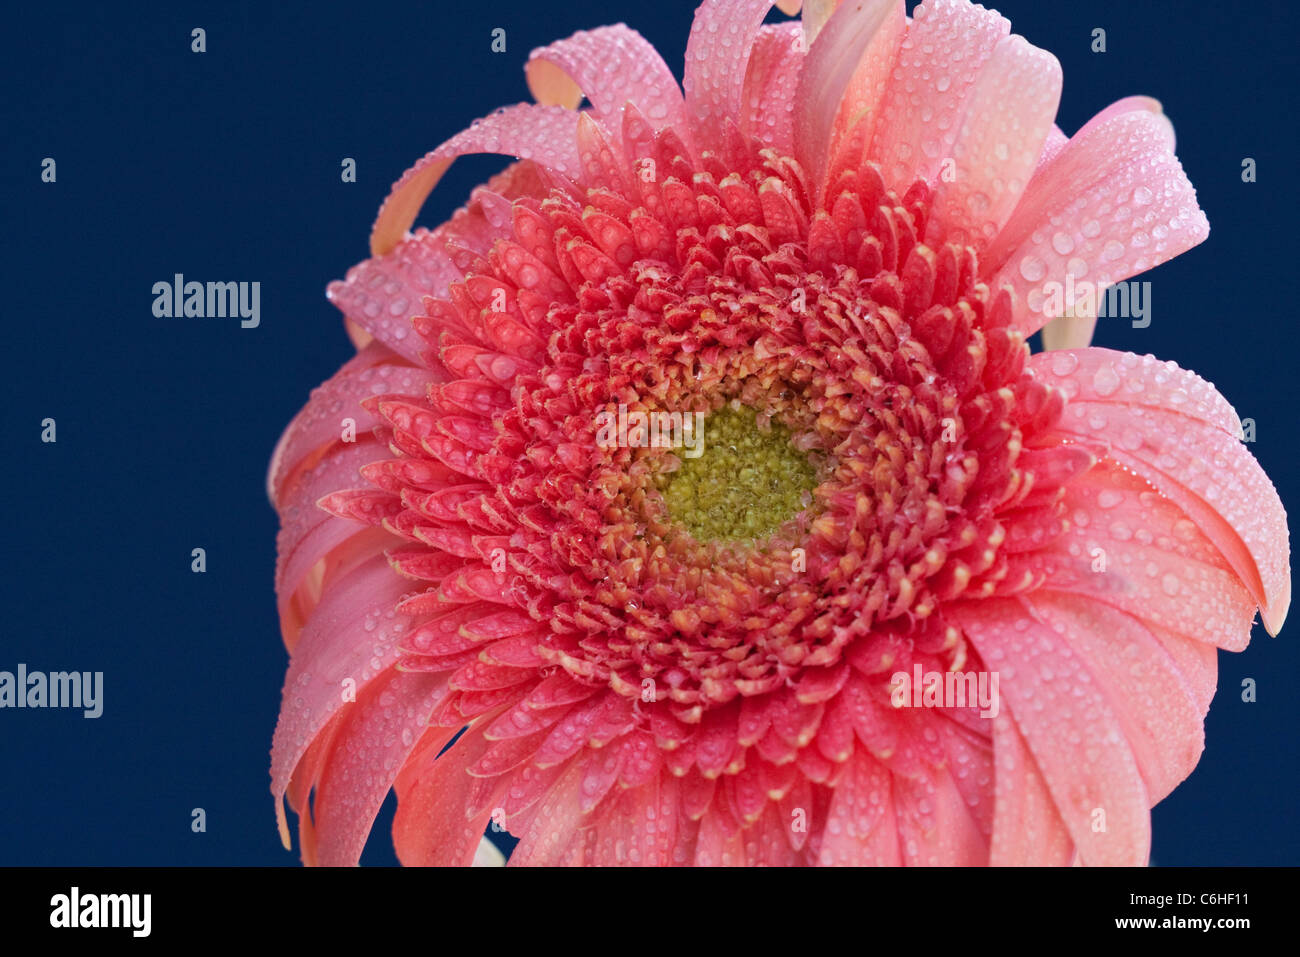 Pink composite flower with water droplets - Stock Image